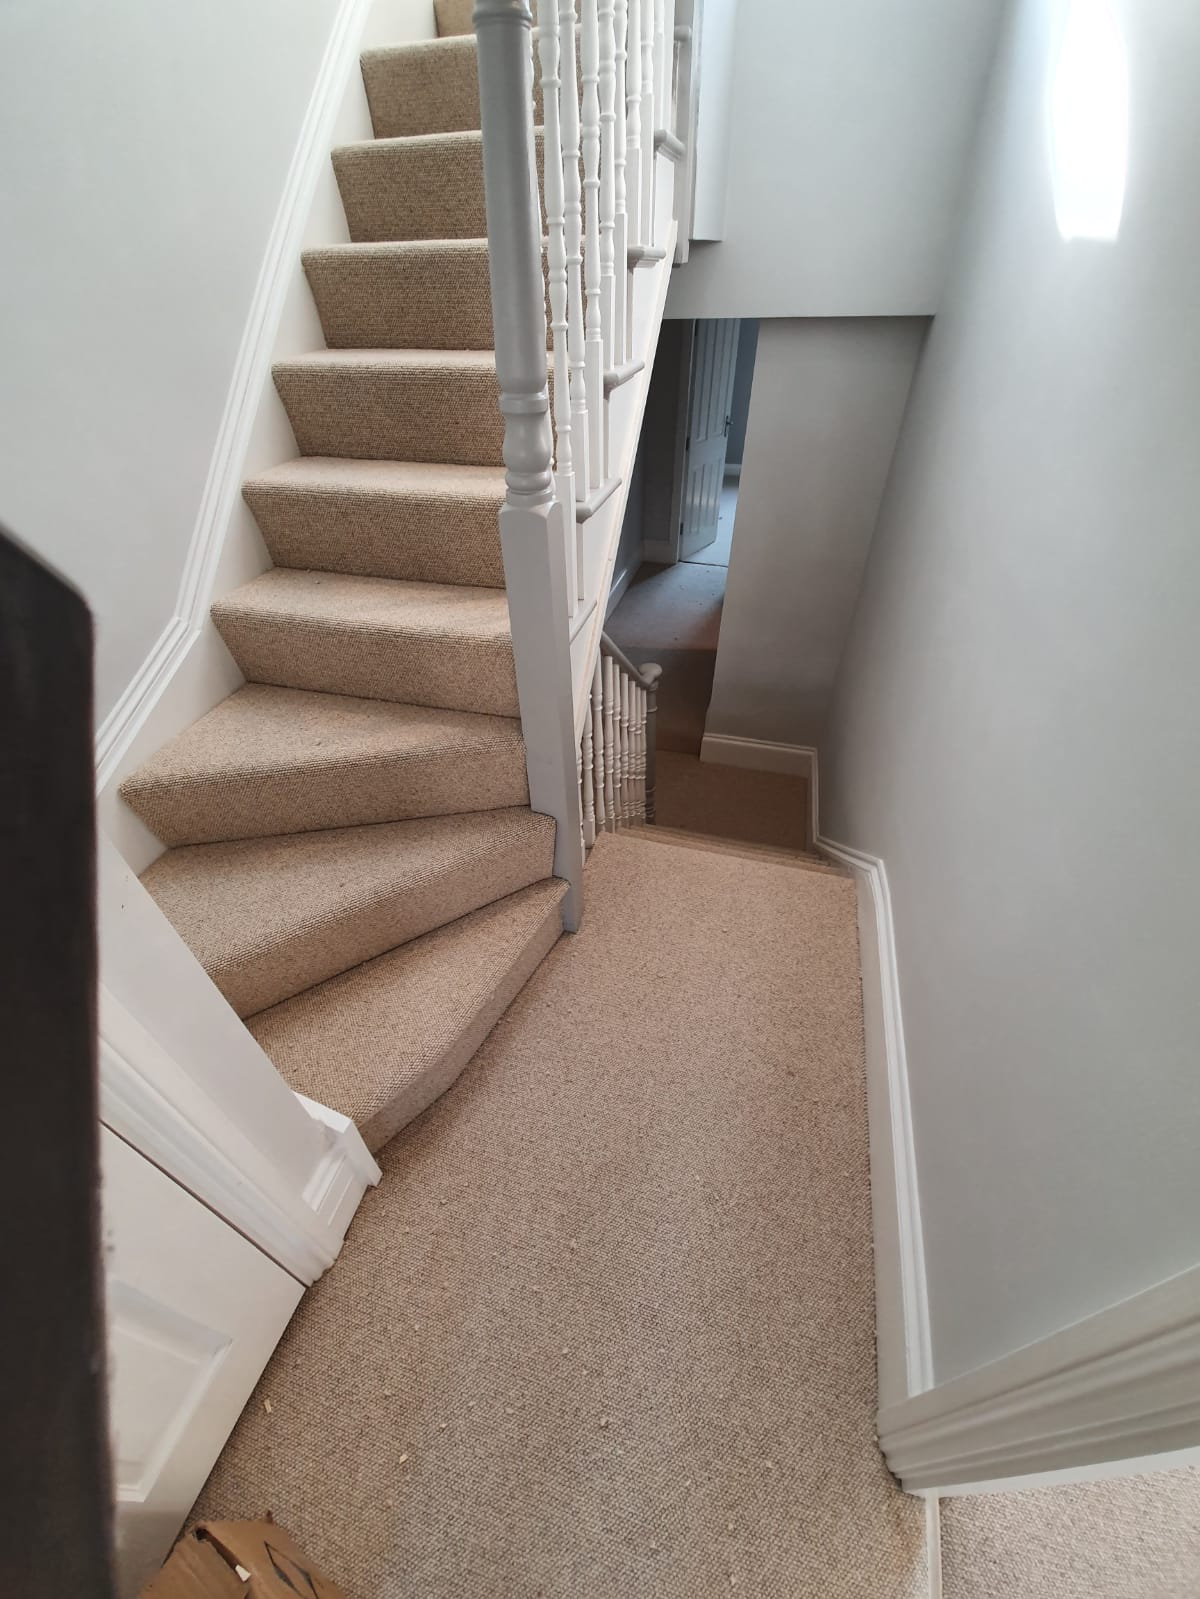 Padstow Angora Pebble Carpet in Notting Hill 2